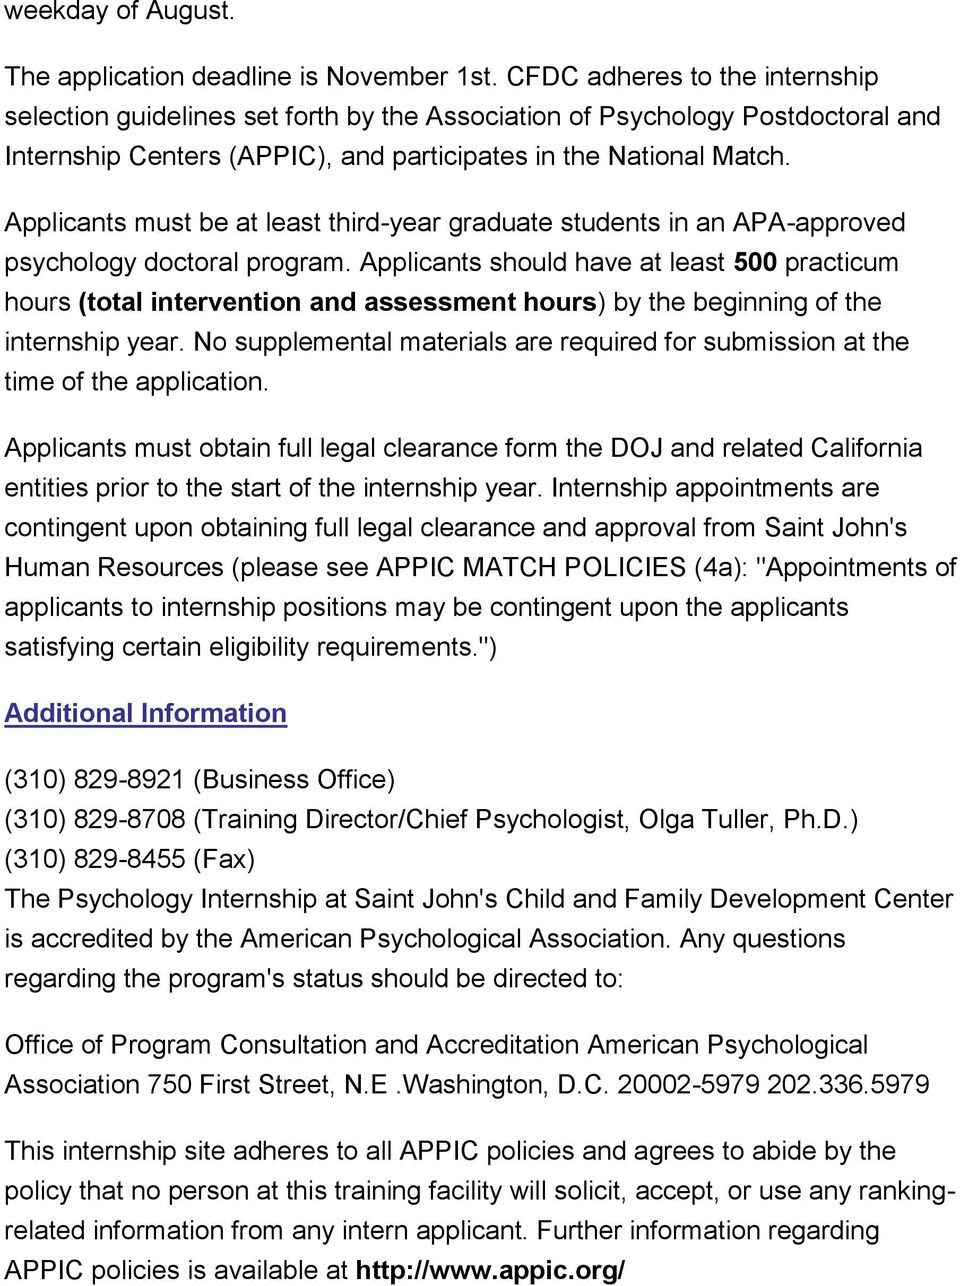 Applicants must be at least third-year graduate students in an APA-approved psychology doctoral program.